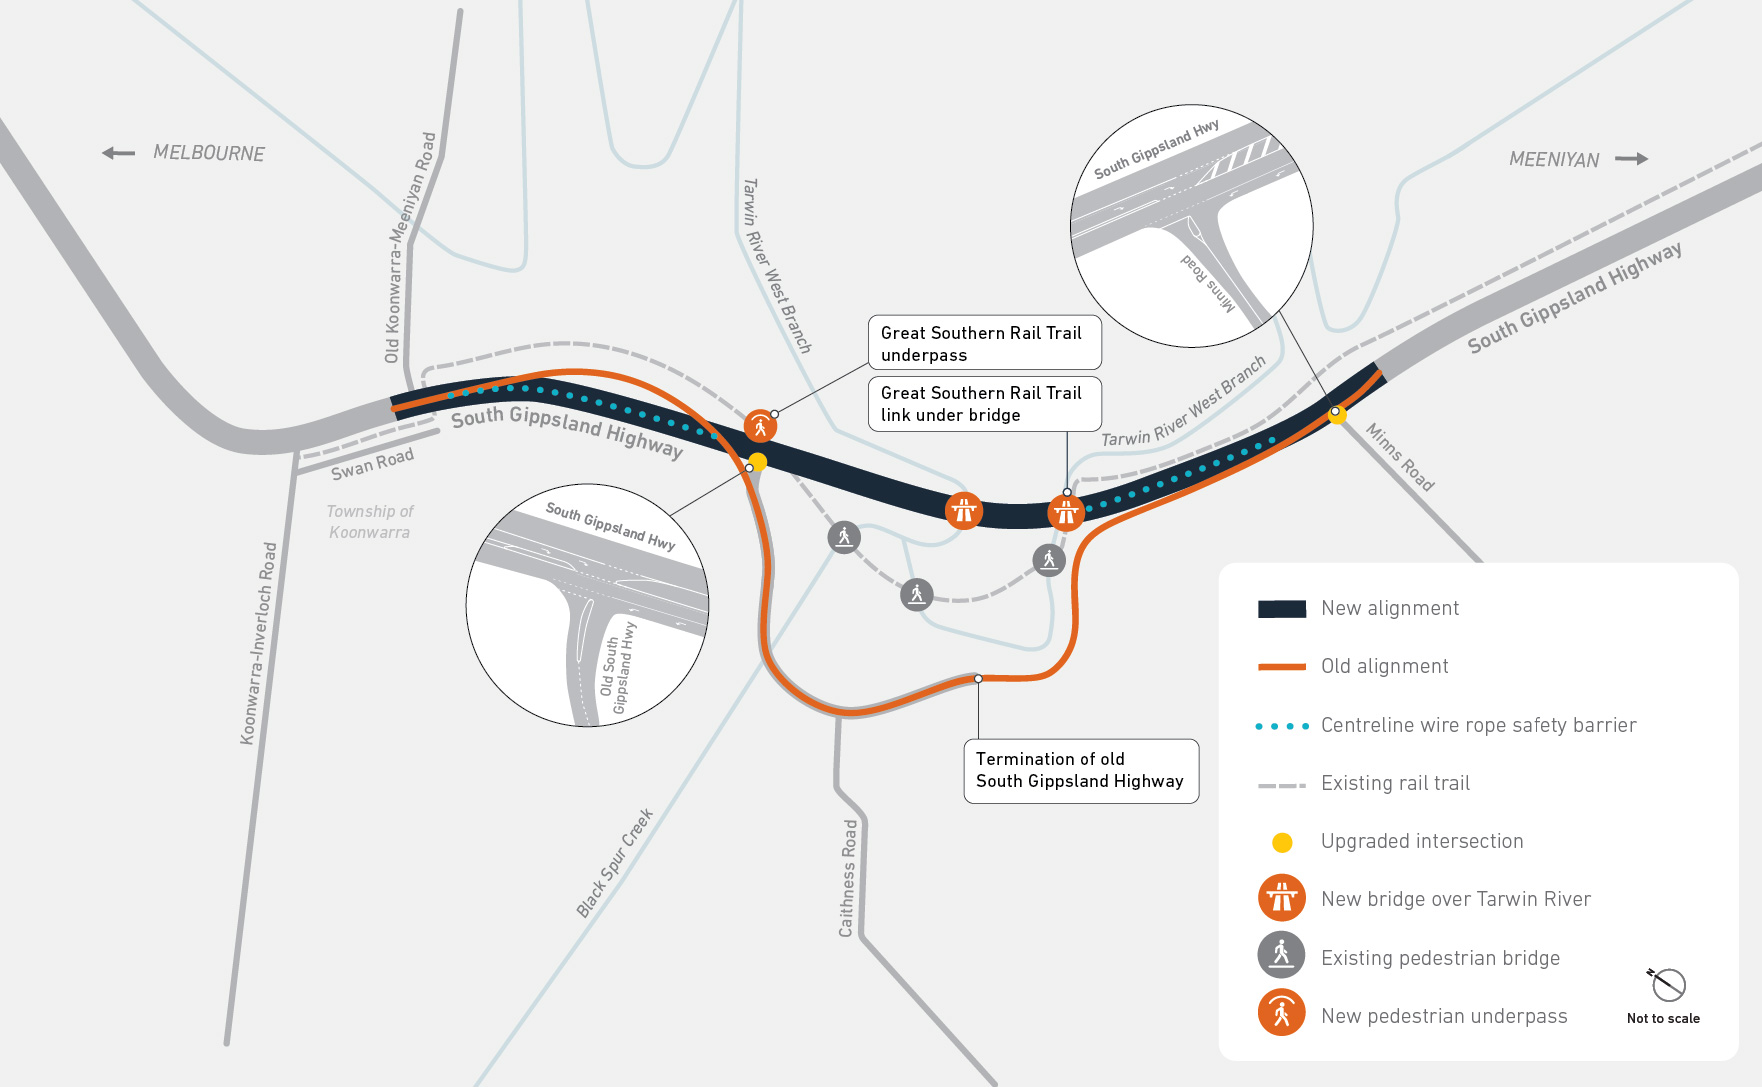 Final design of the new South Gippsland Highway alignment including the upgraded intersections at Minns Road and the Old South Gippsland Highway, the new bridges over the Tarwin River and new pedestrian underpass where the Great Southern Rail Trail crosse